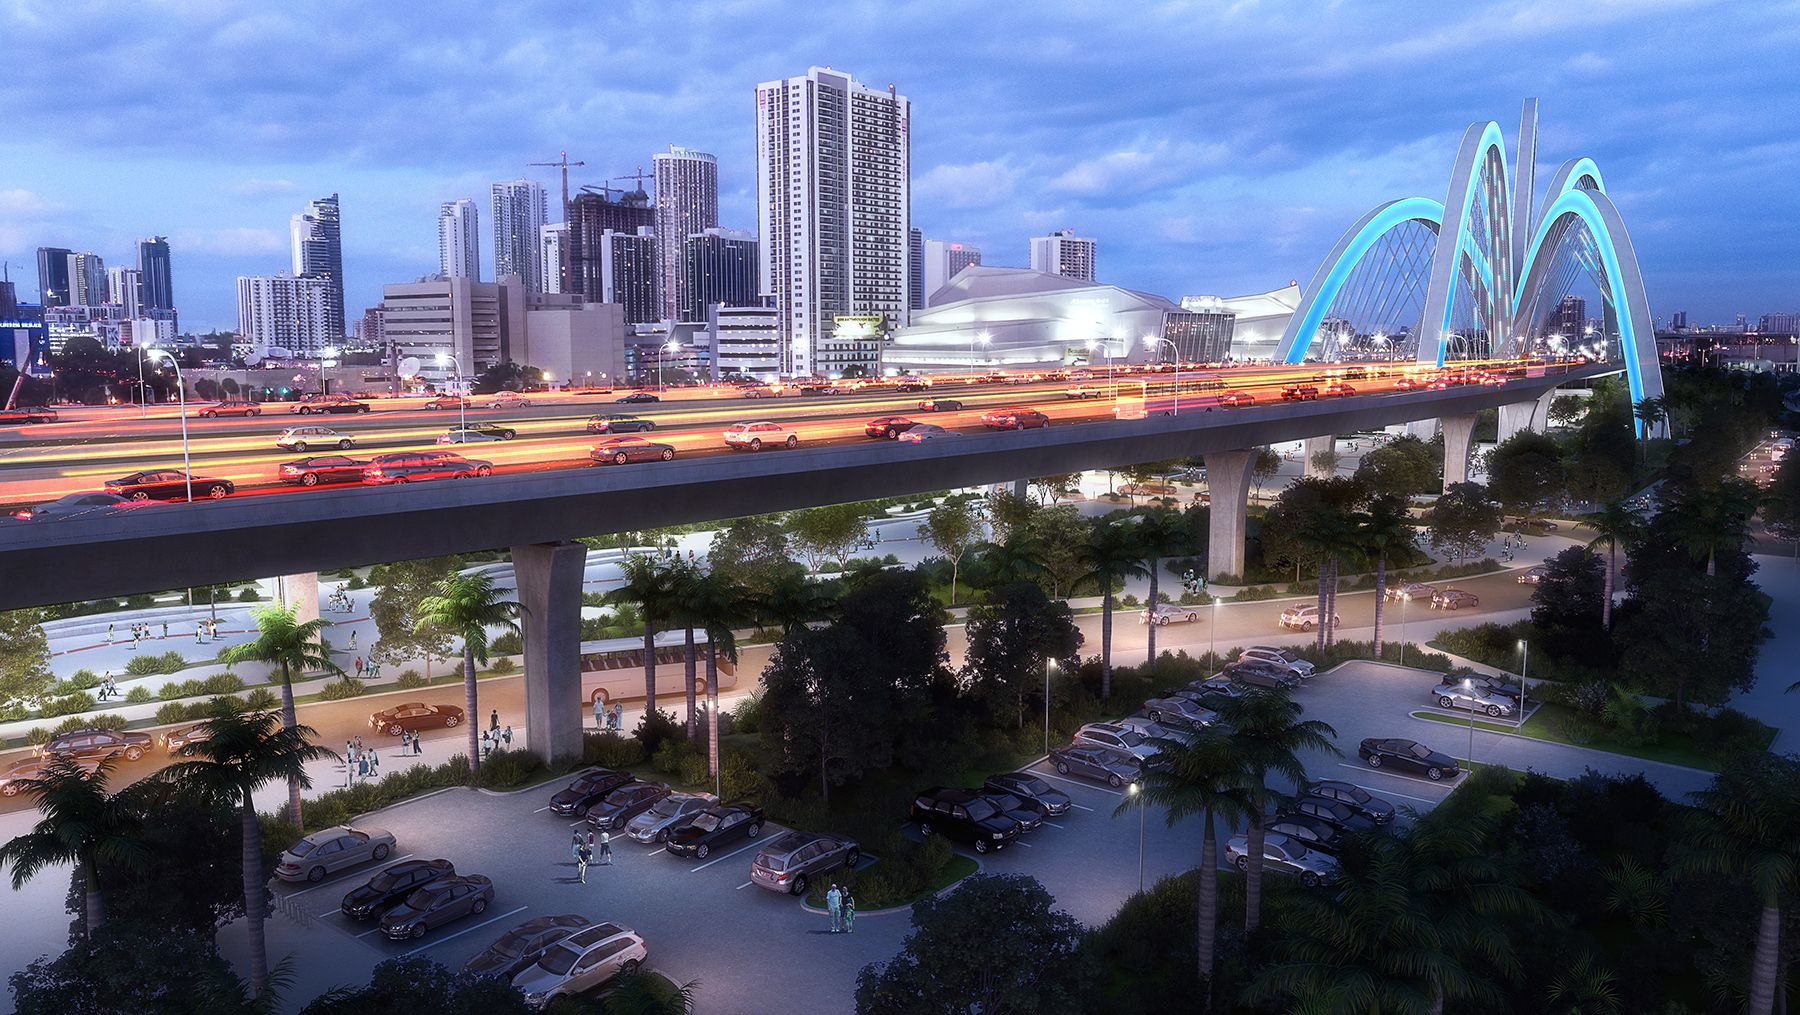 Signature Bridge Rendering